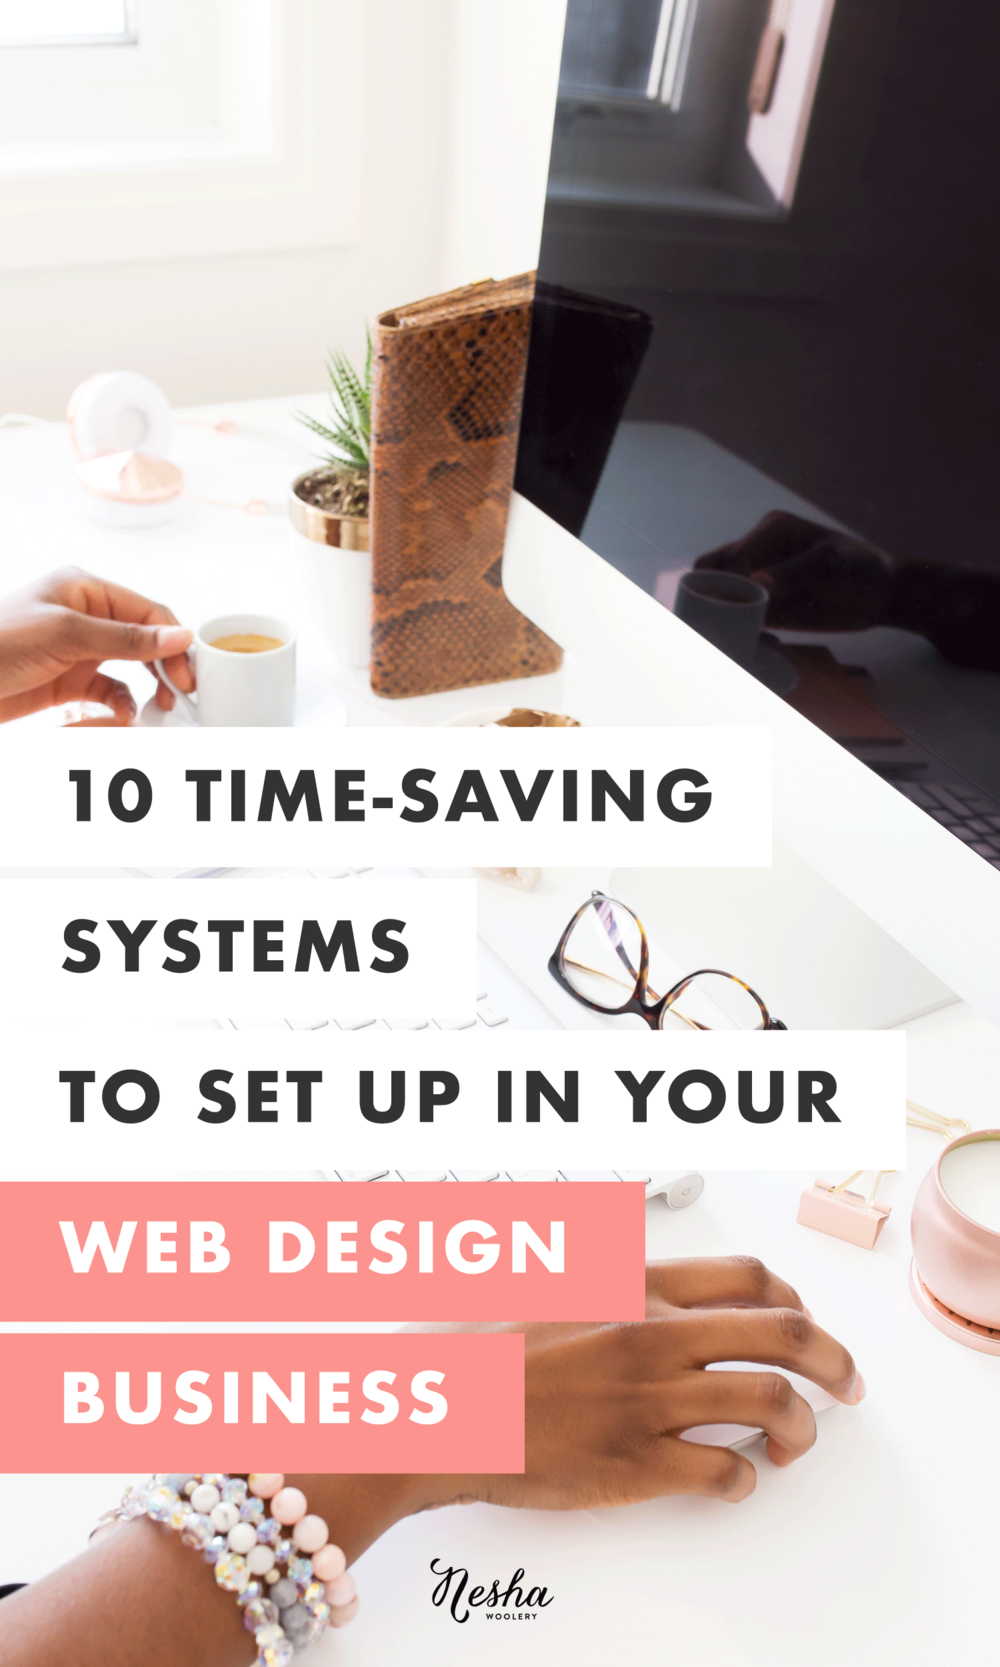 10-timesaving-systems-to-set-up-in-your-web-design-business.png